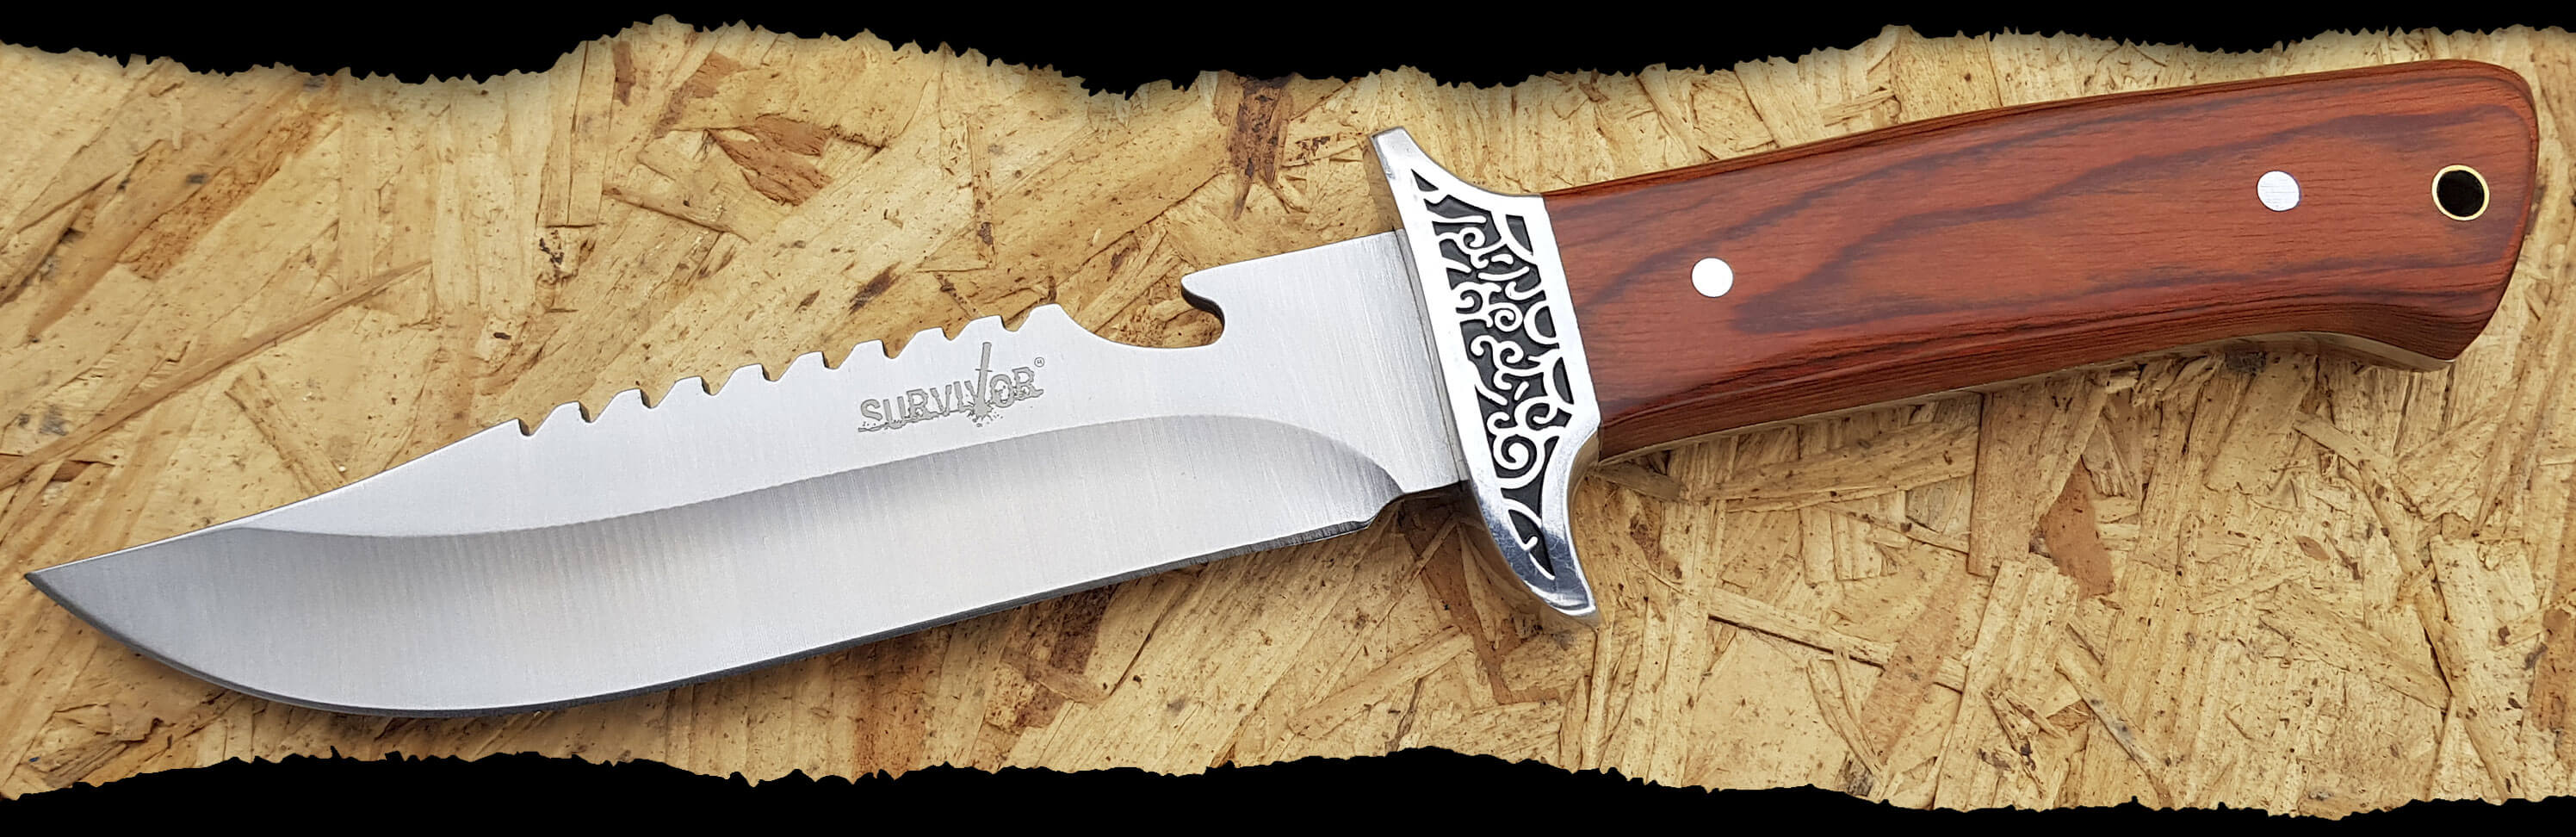 Survivor Bushcraft Knife